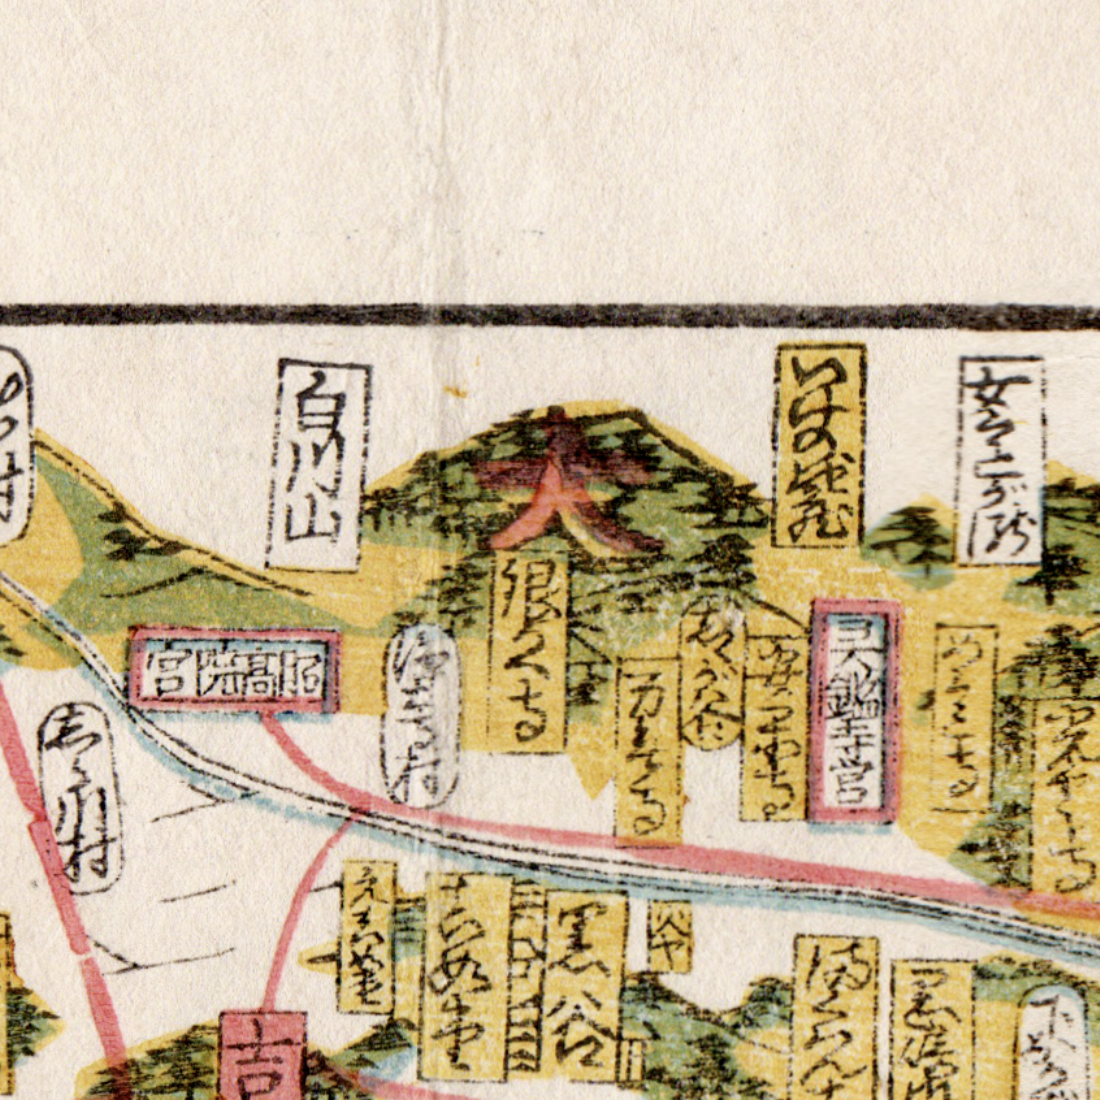 Daimonjiyama as depicted on the map.